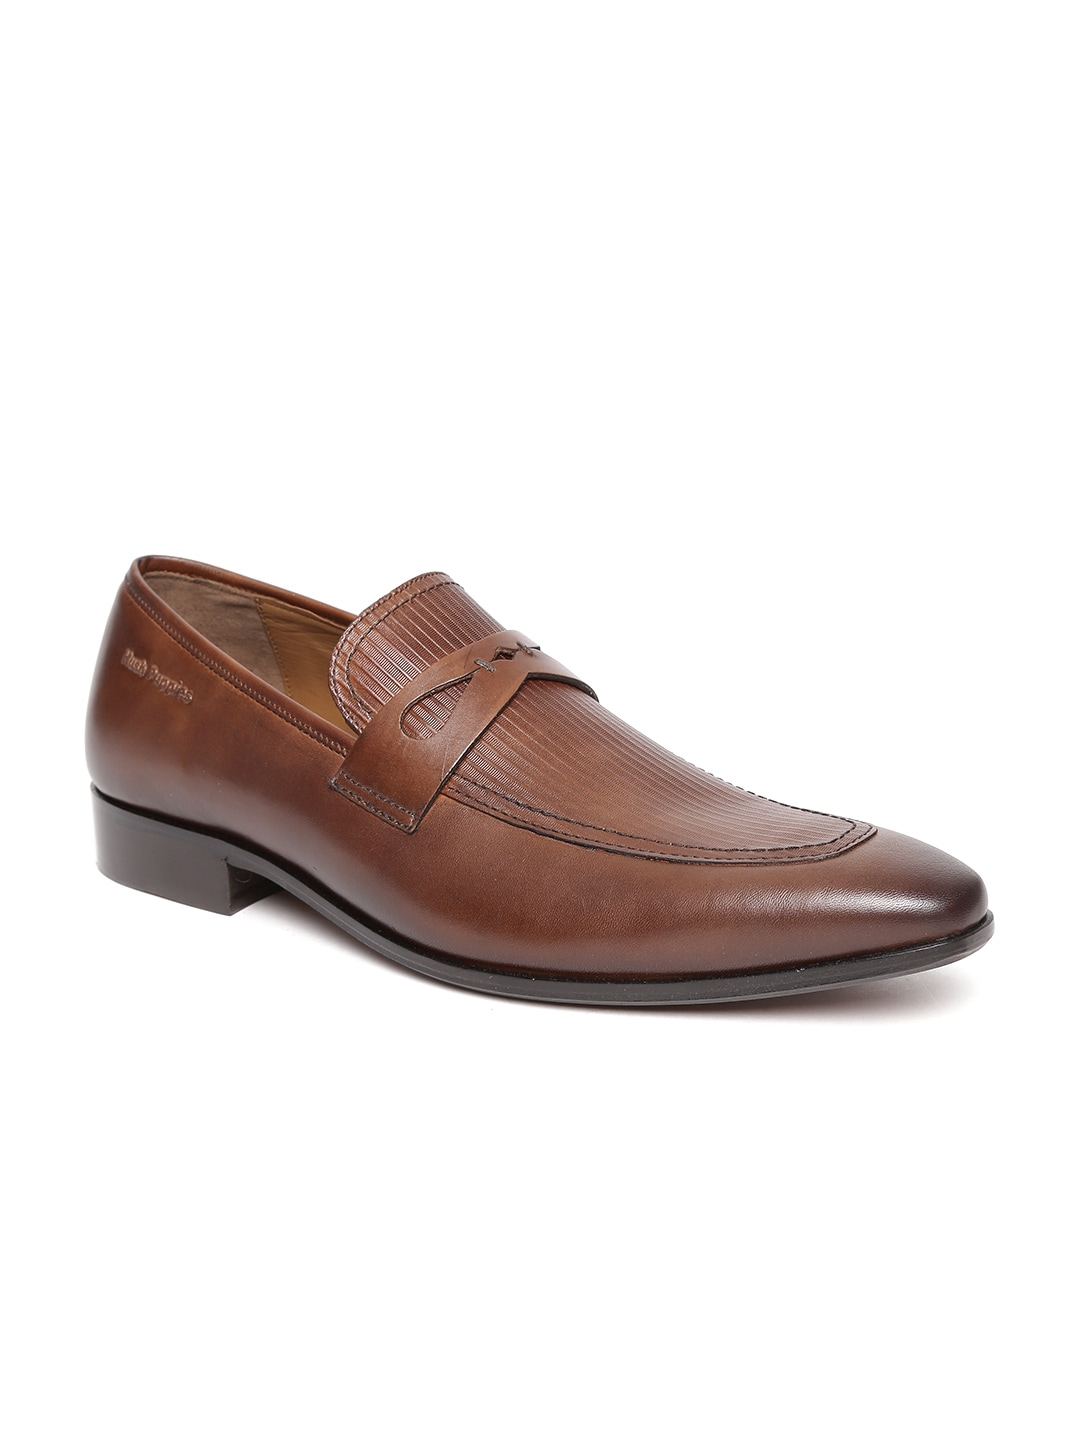 0a037a35b8350 Hush Puppies - Buy Hush Puppies shoes Online in India